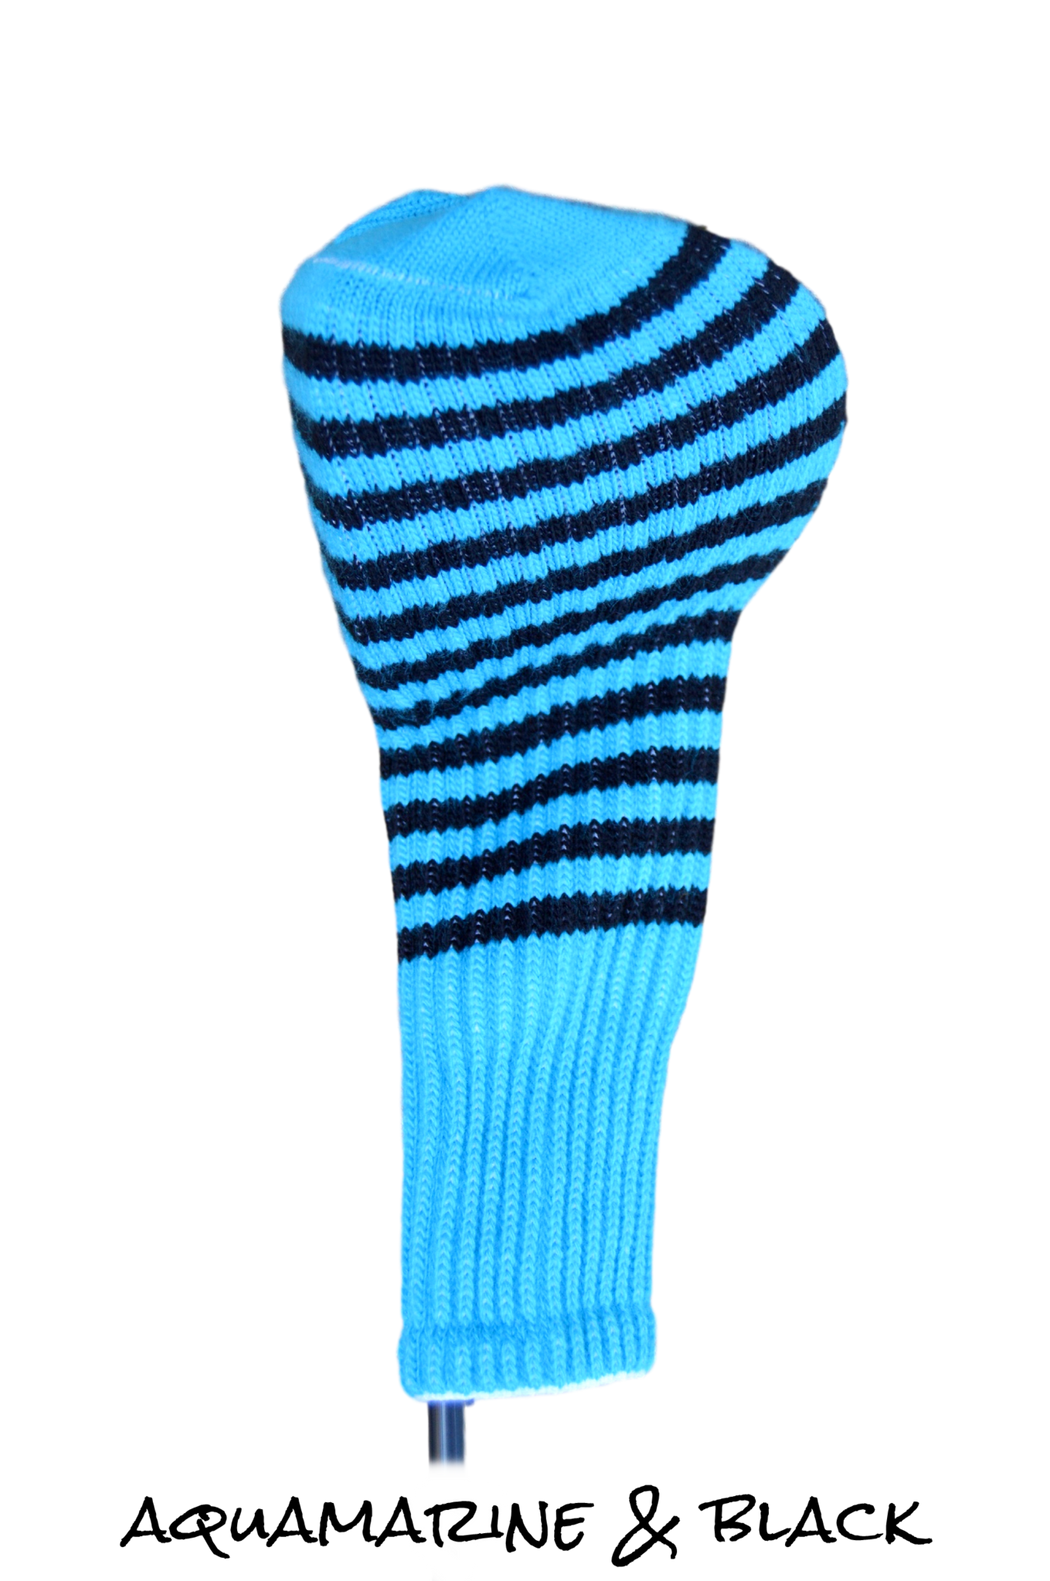 Aqua Marine and Black Club Sock Golf Headcover | Peanuts and Golf